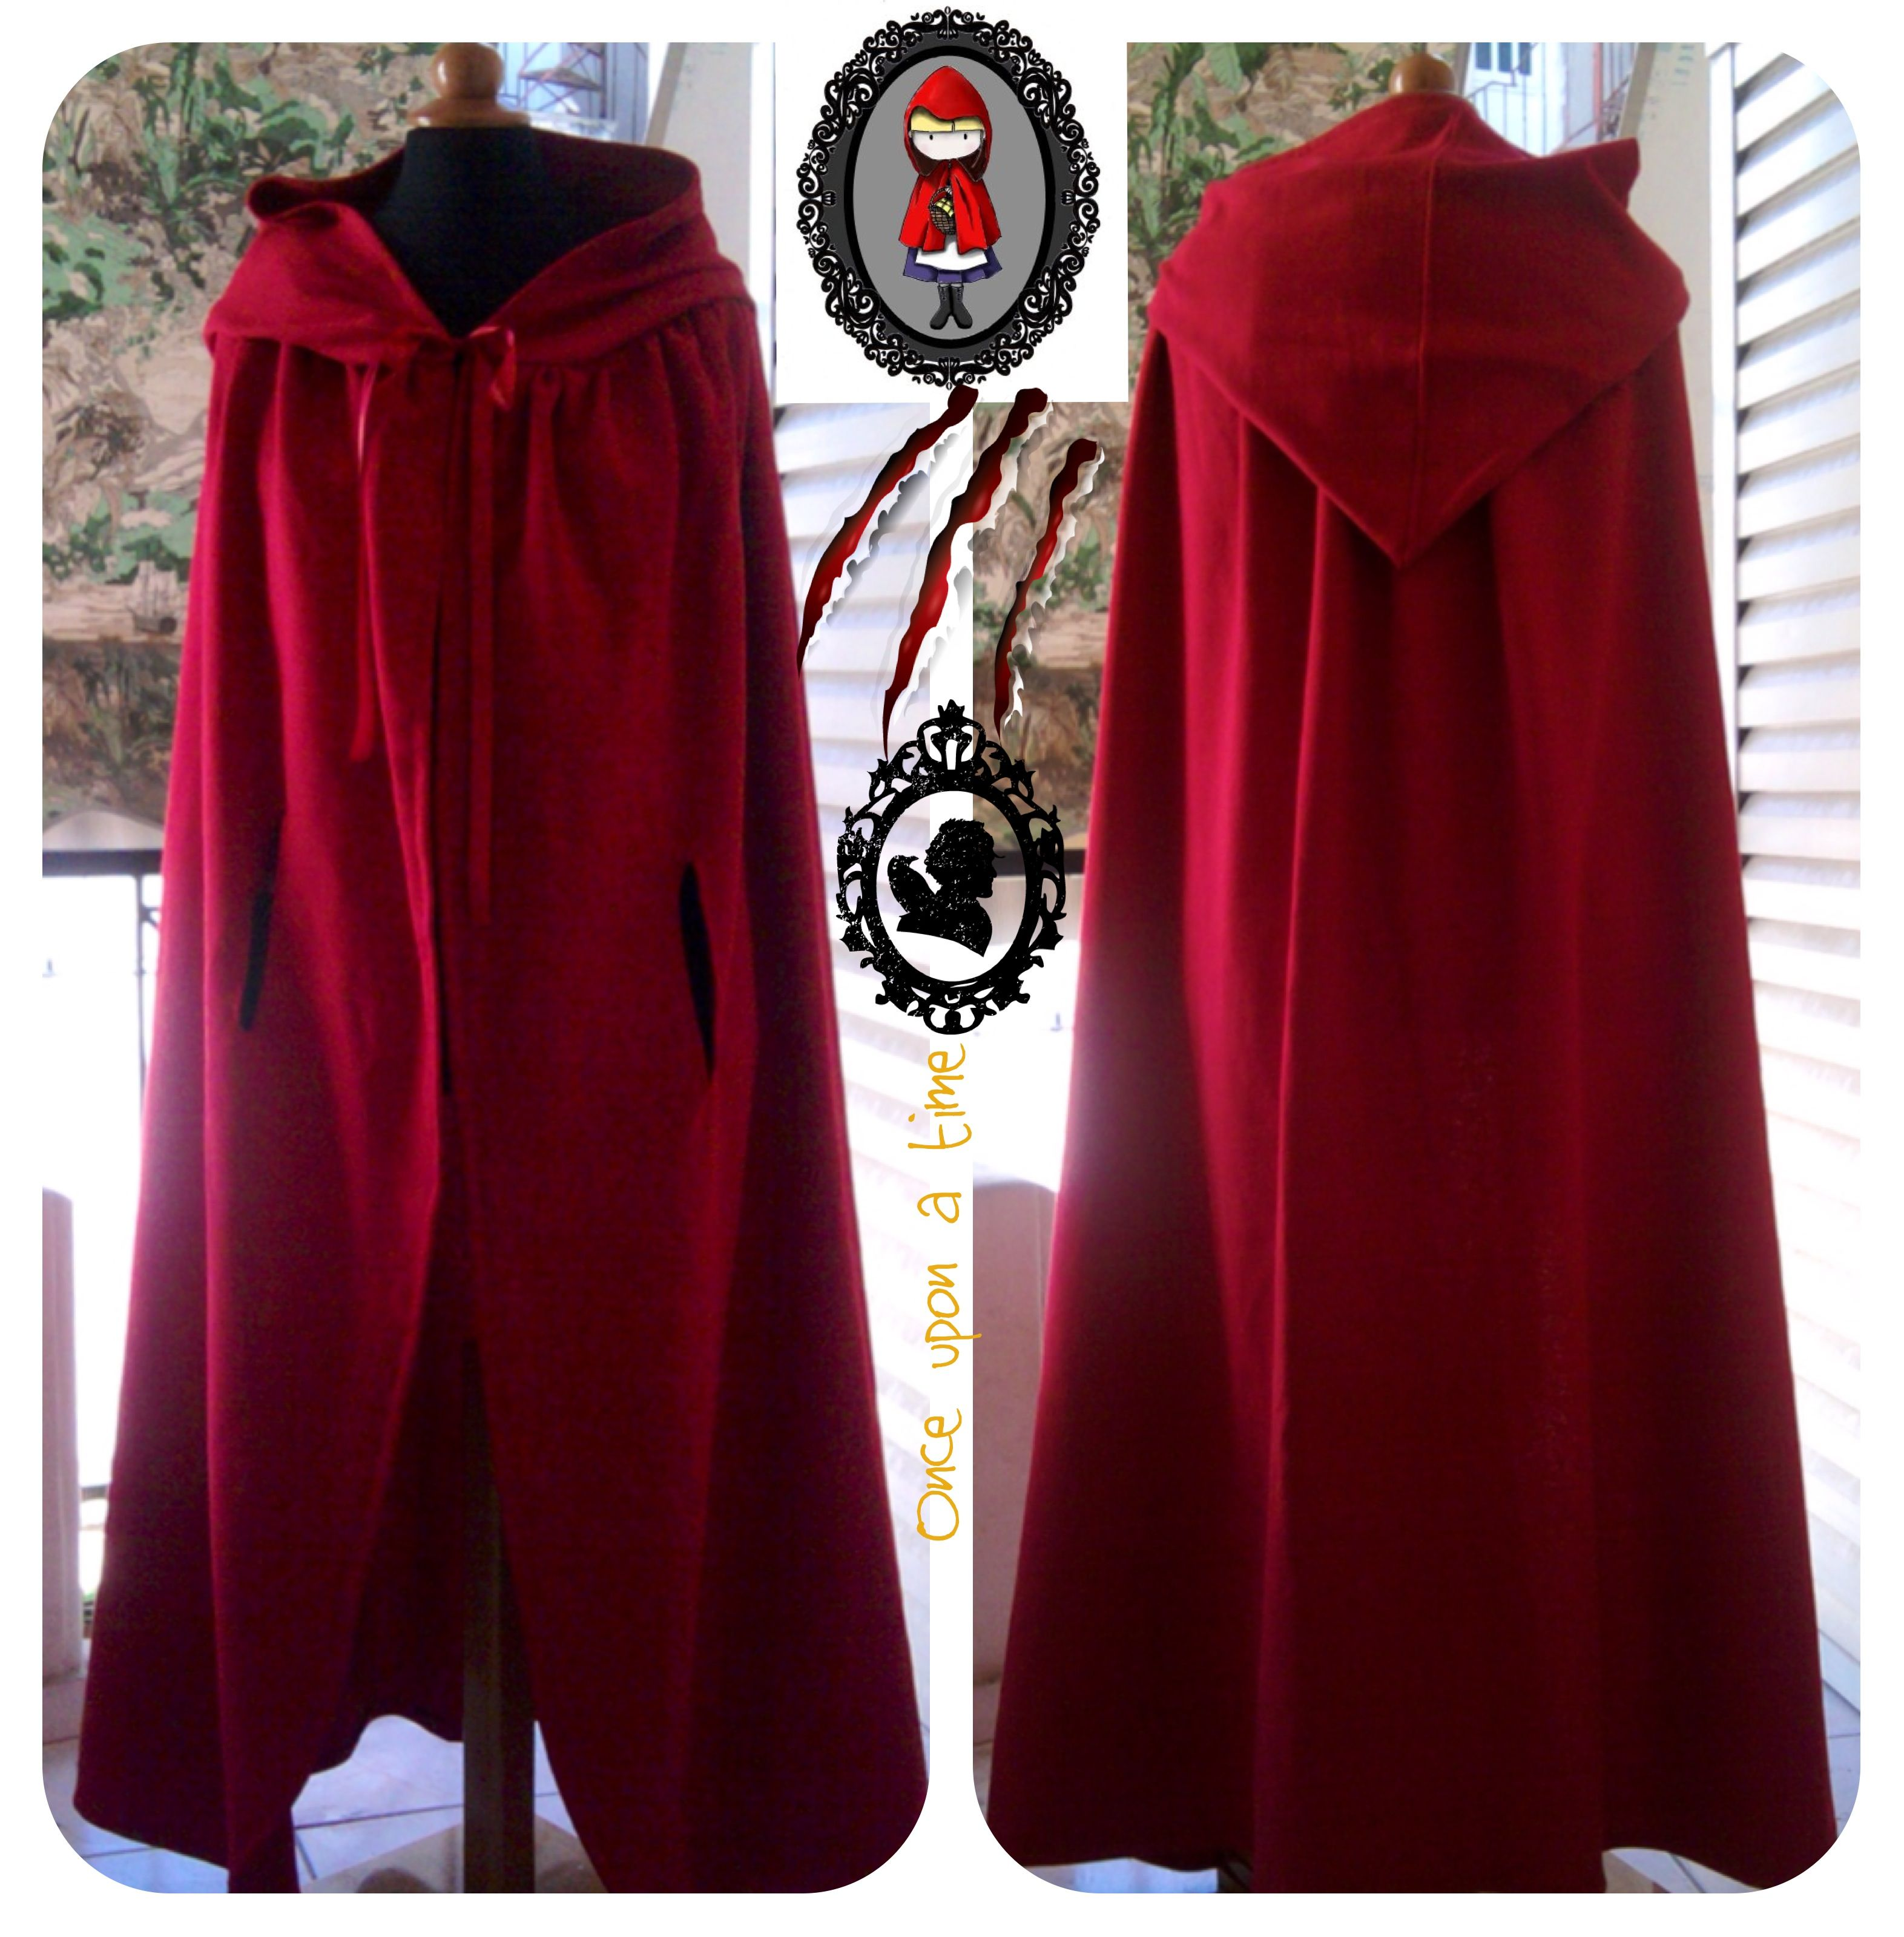 Cloak for Red riding hood costume